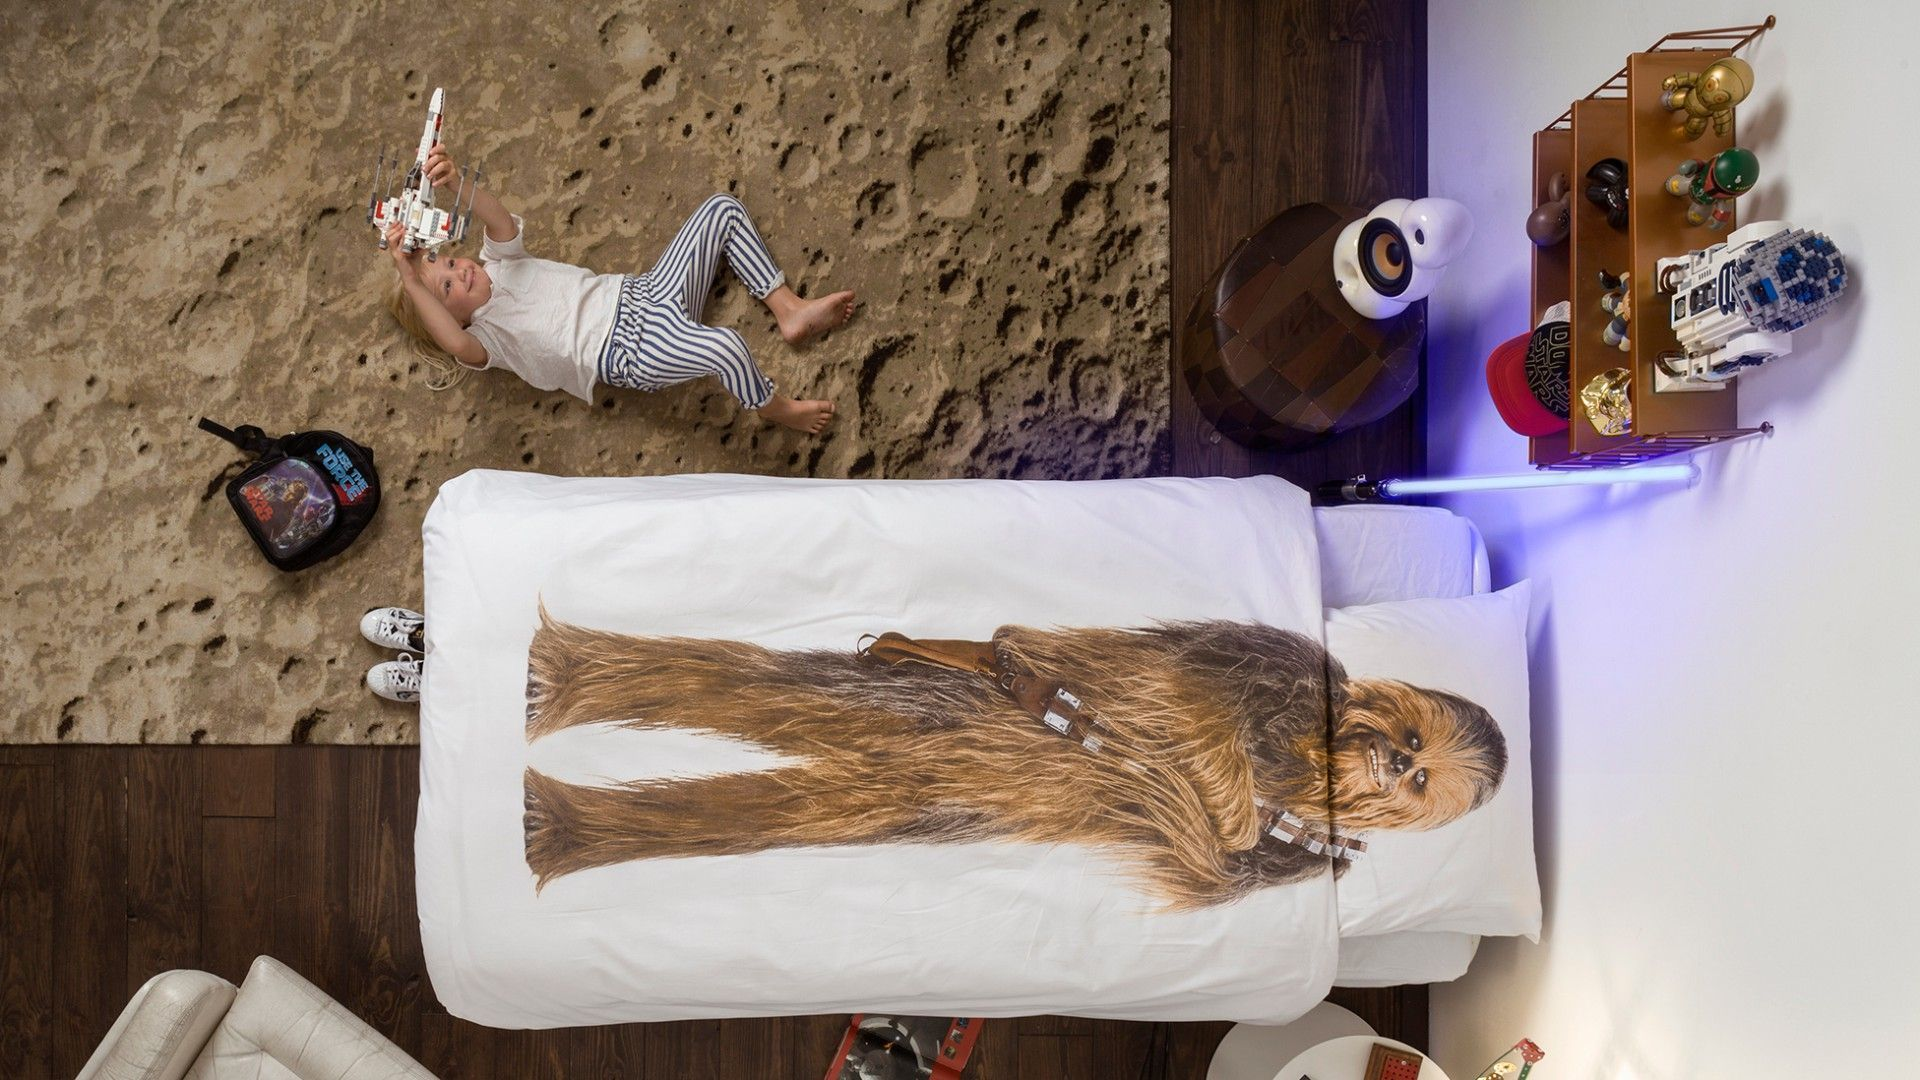 SNURK CHEWBACCA Dekbedovertrek Star Wars